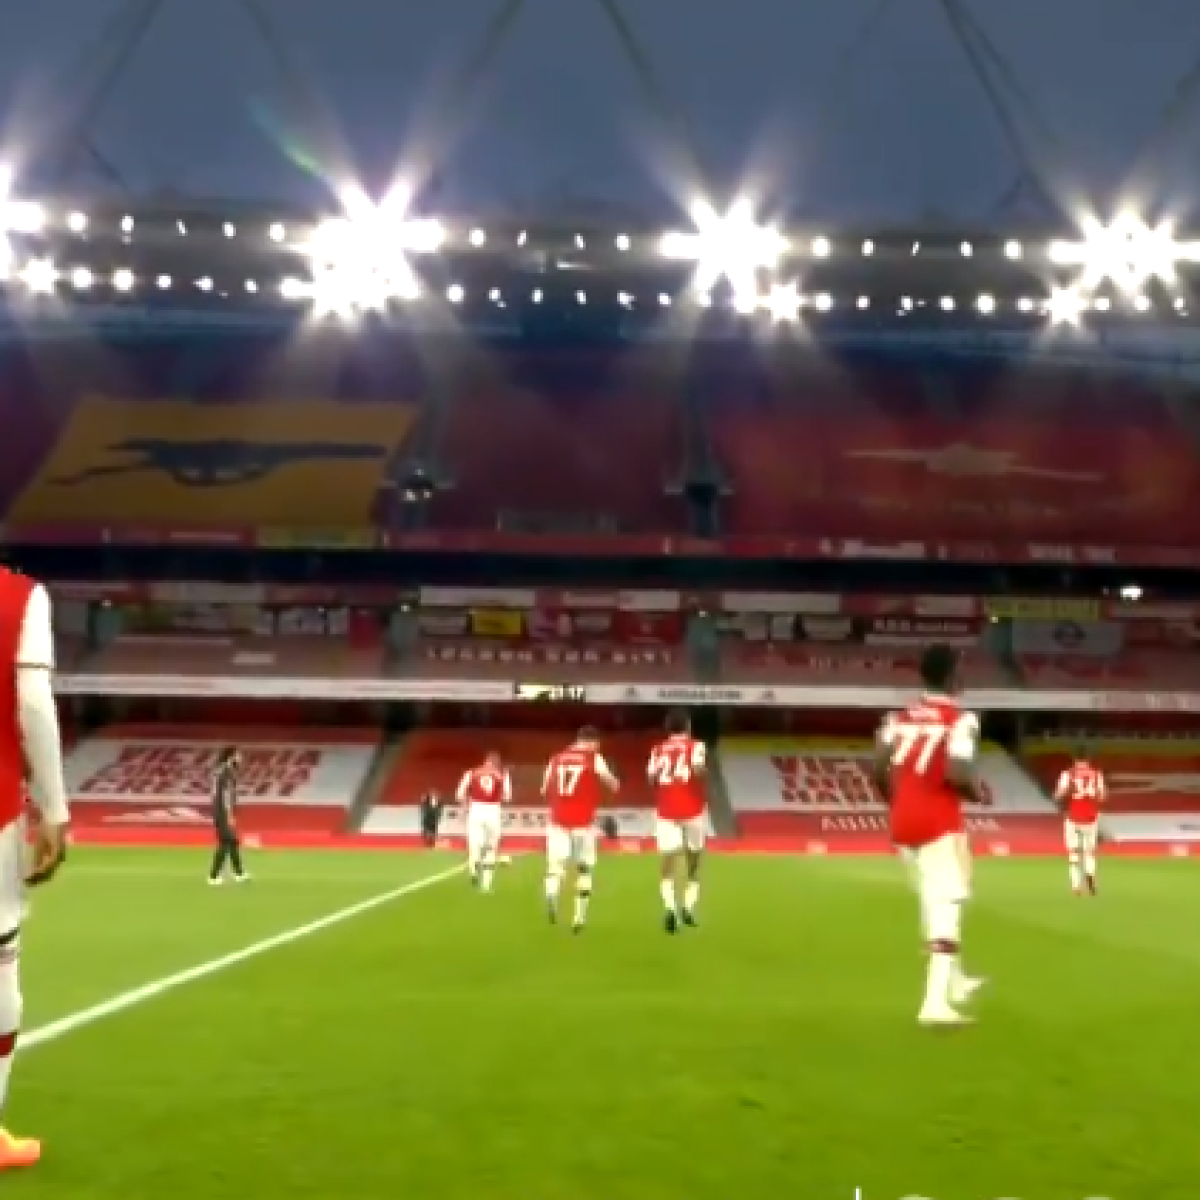 Watch: WWE thrilled as Arsenal walk into half-time on Triple H's entrance music